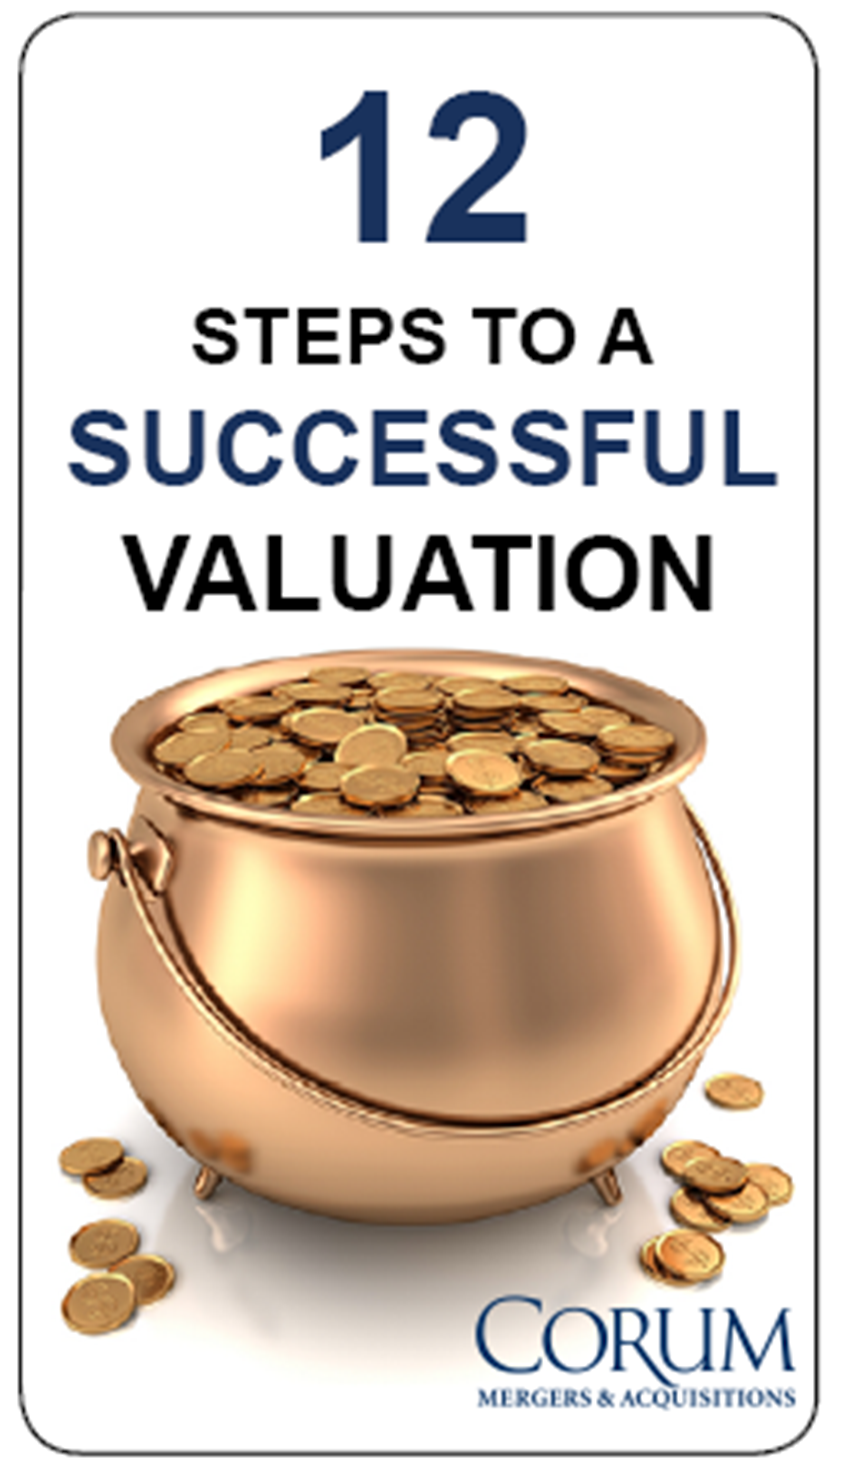 Tech M&A Monthly: 12 Tips for a Successful Valuation #1 & 2